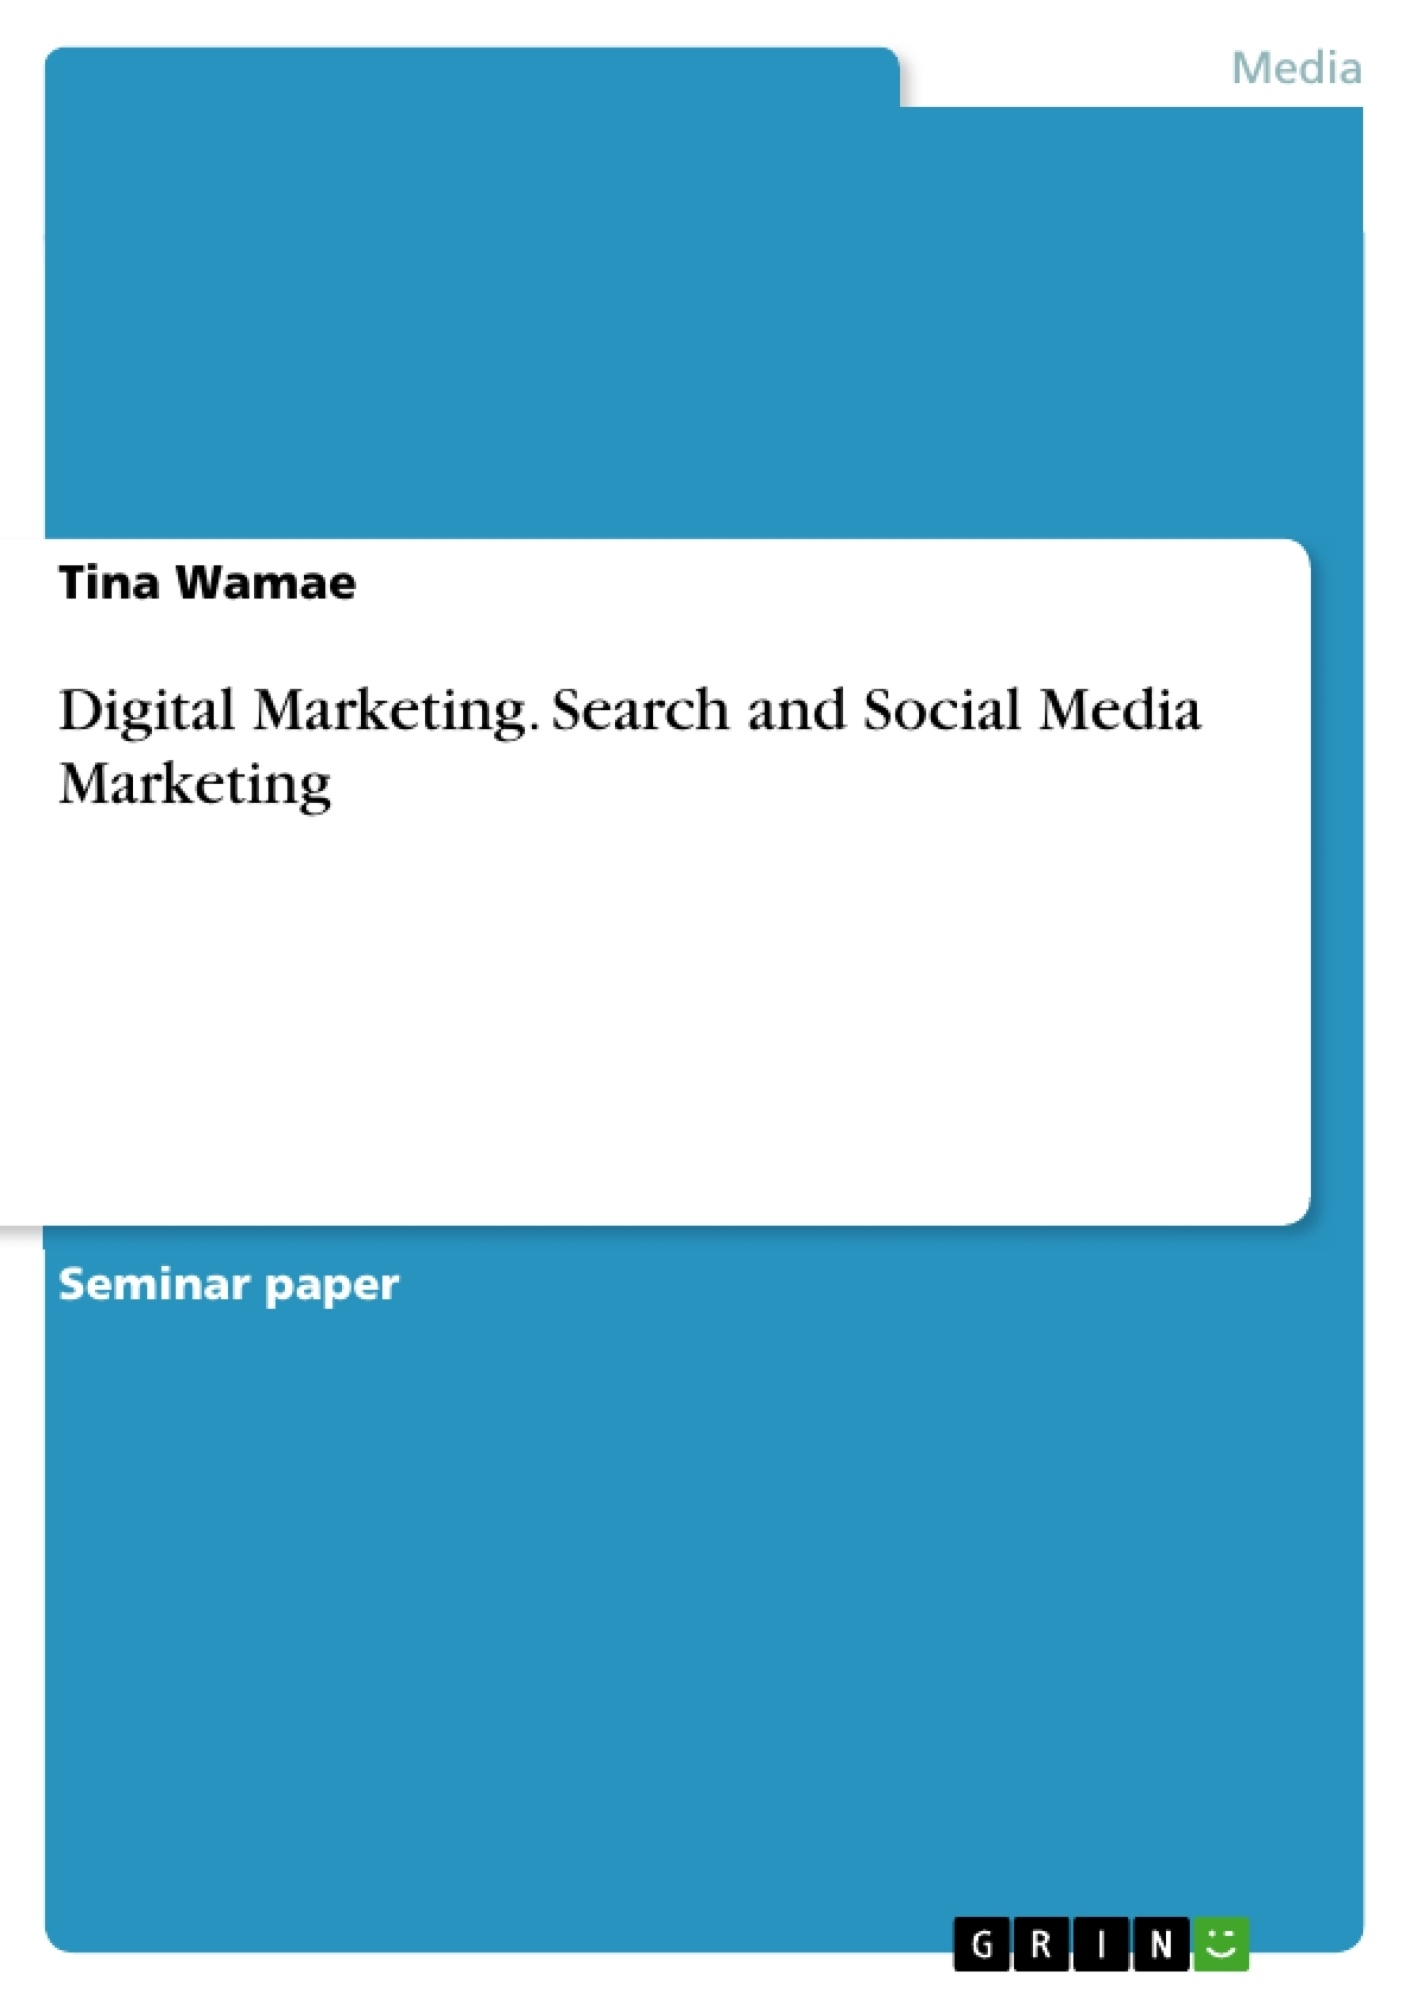 Title: Digital Marketing. Search and Social Media Marketing